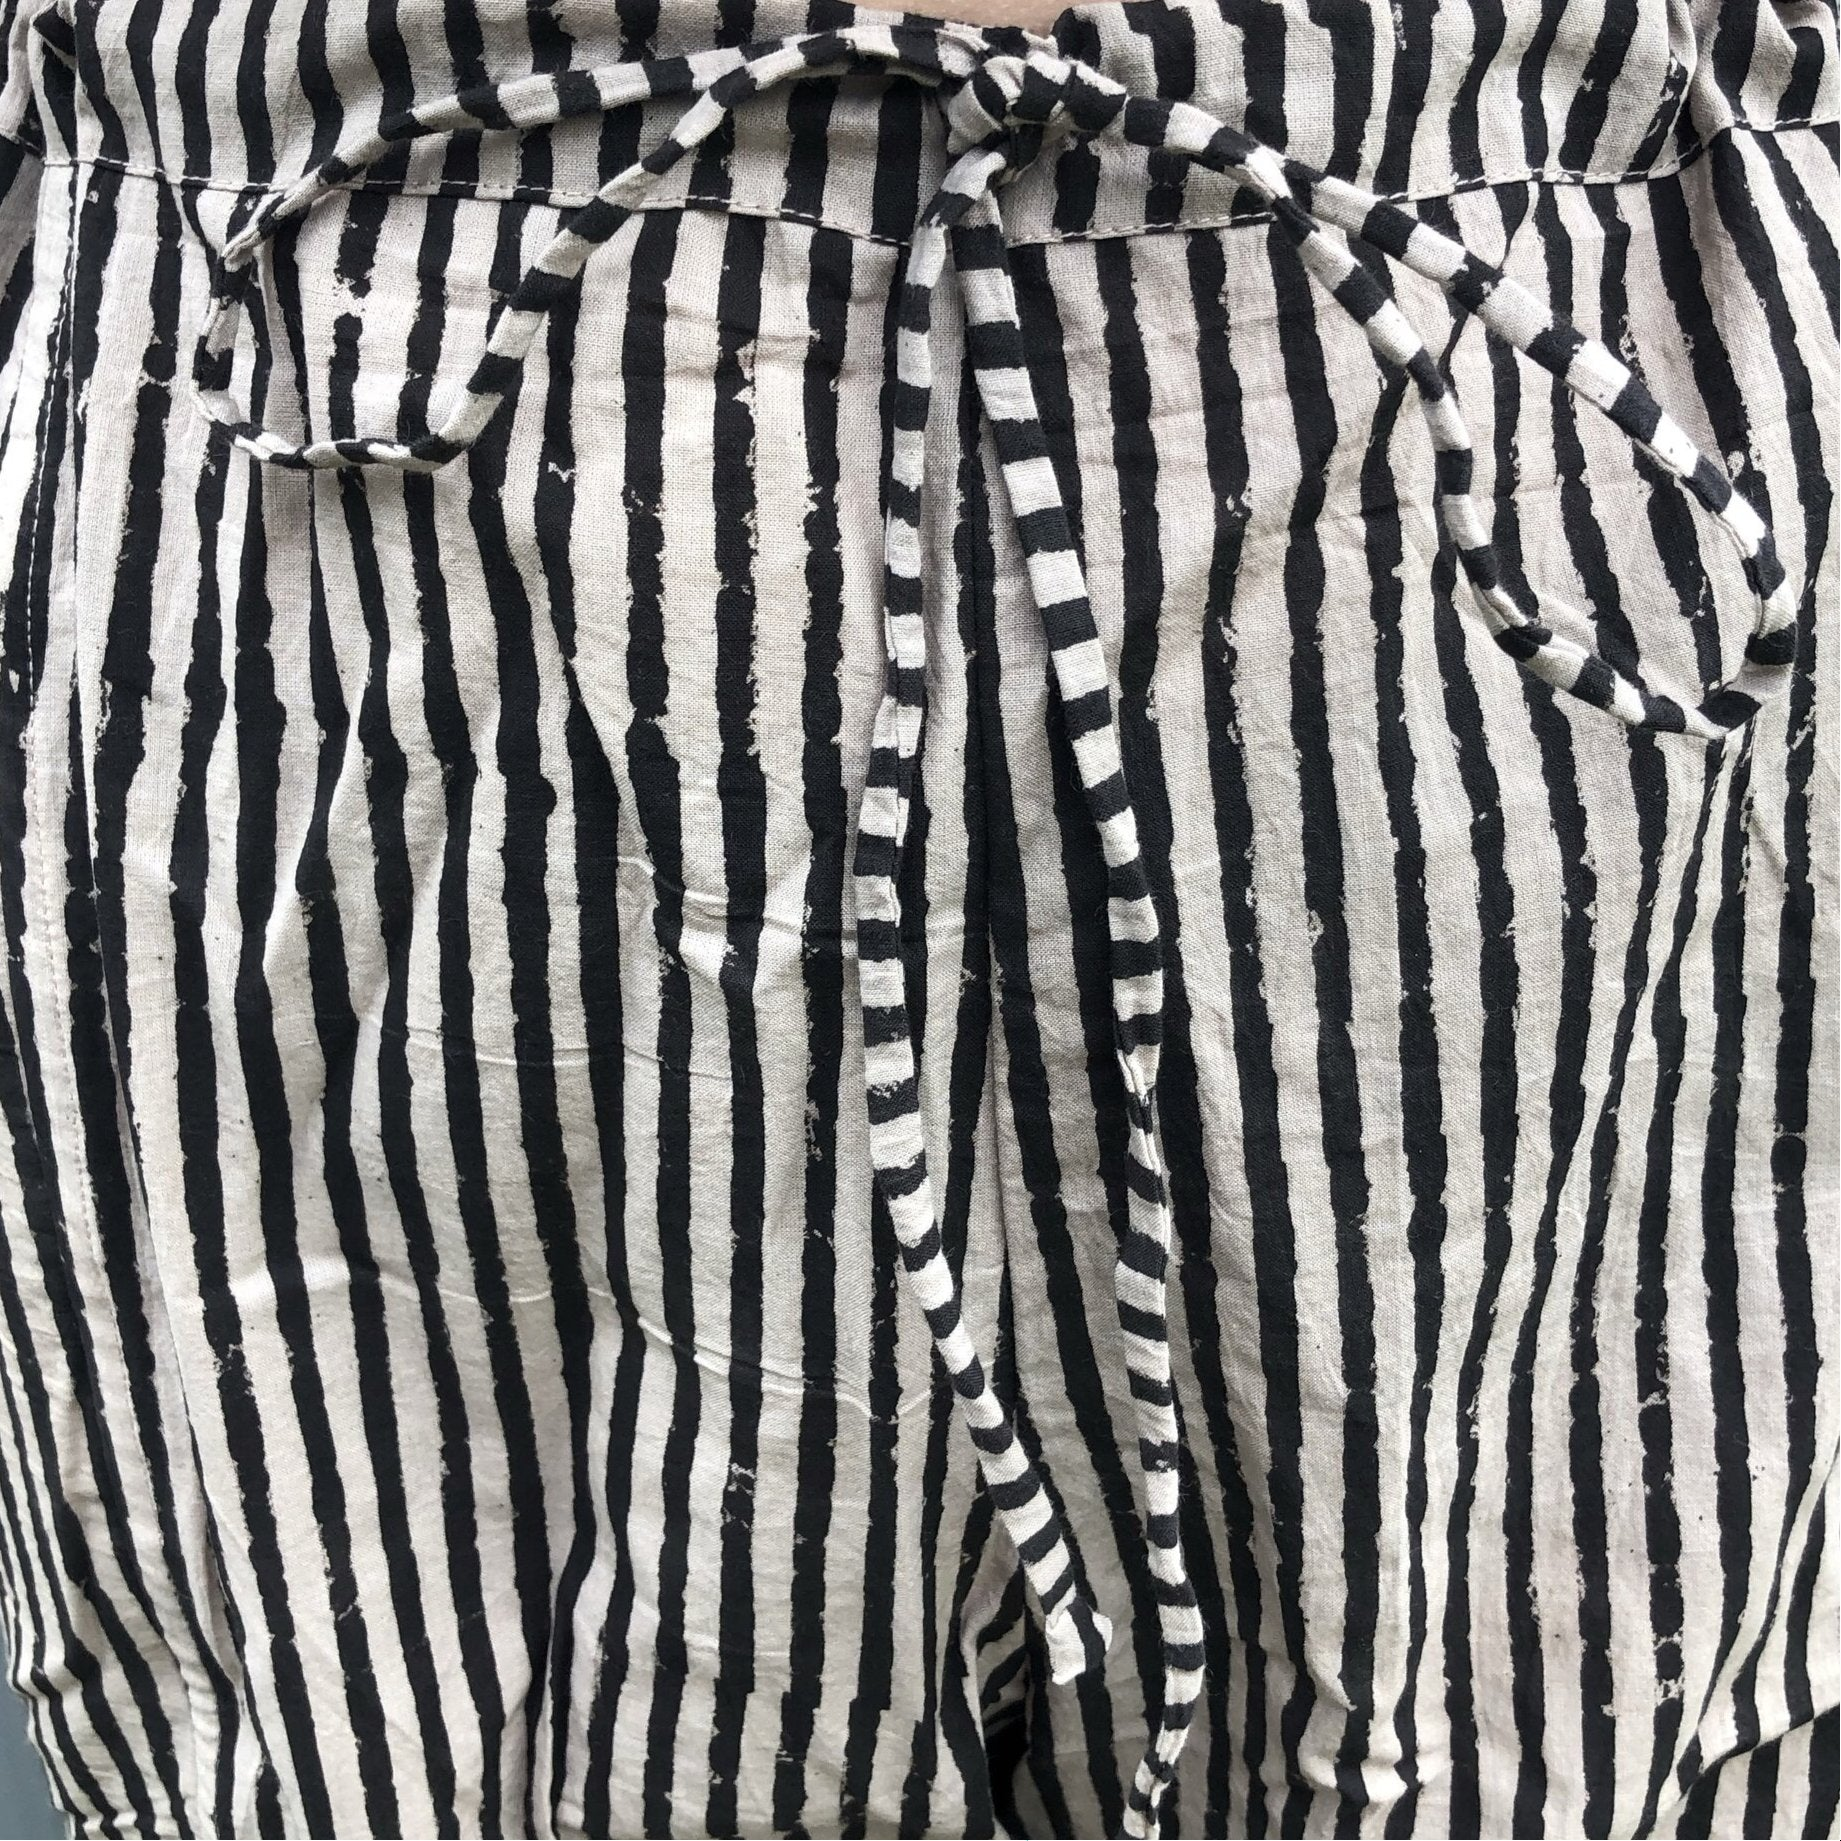 Fair Trade Ethical Striped Cotton Pants in Black